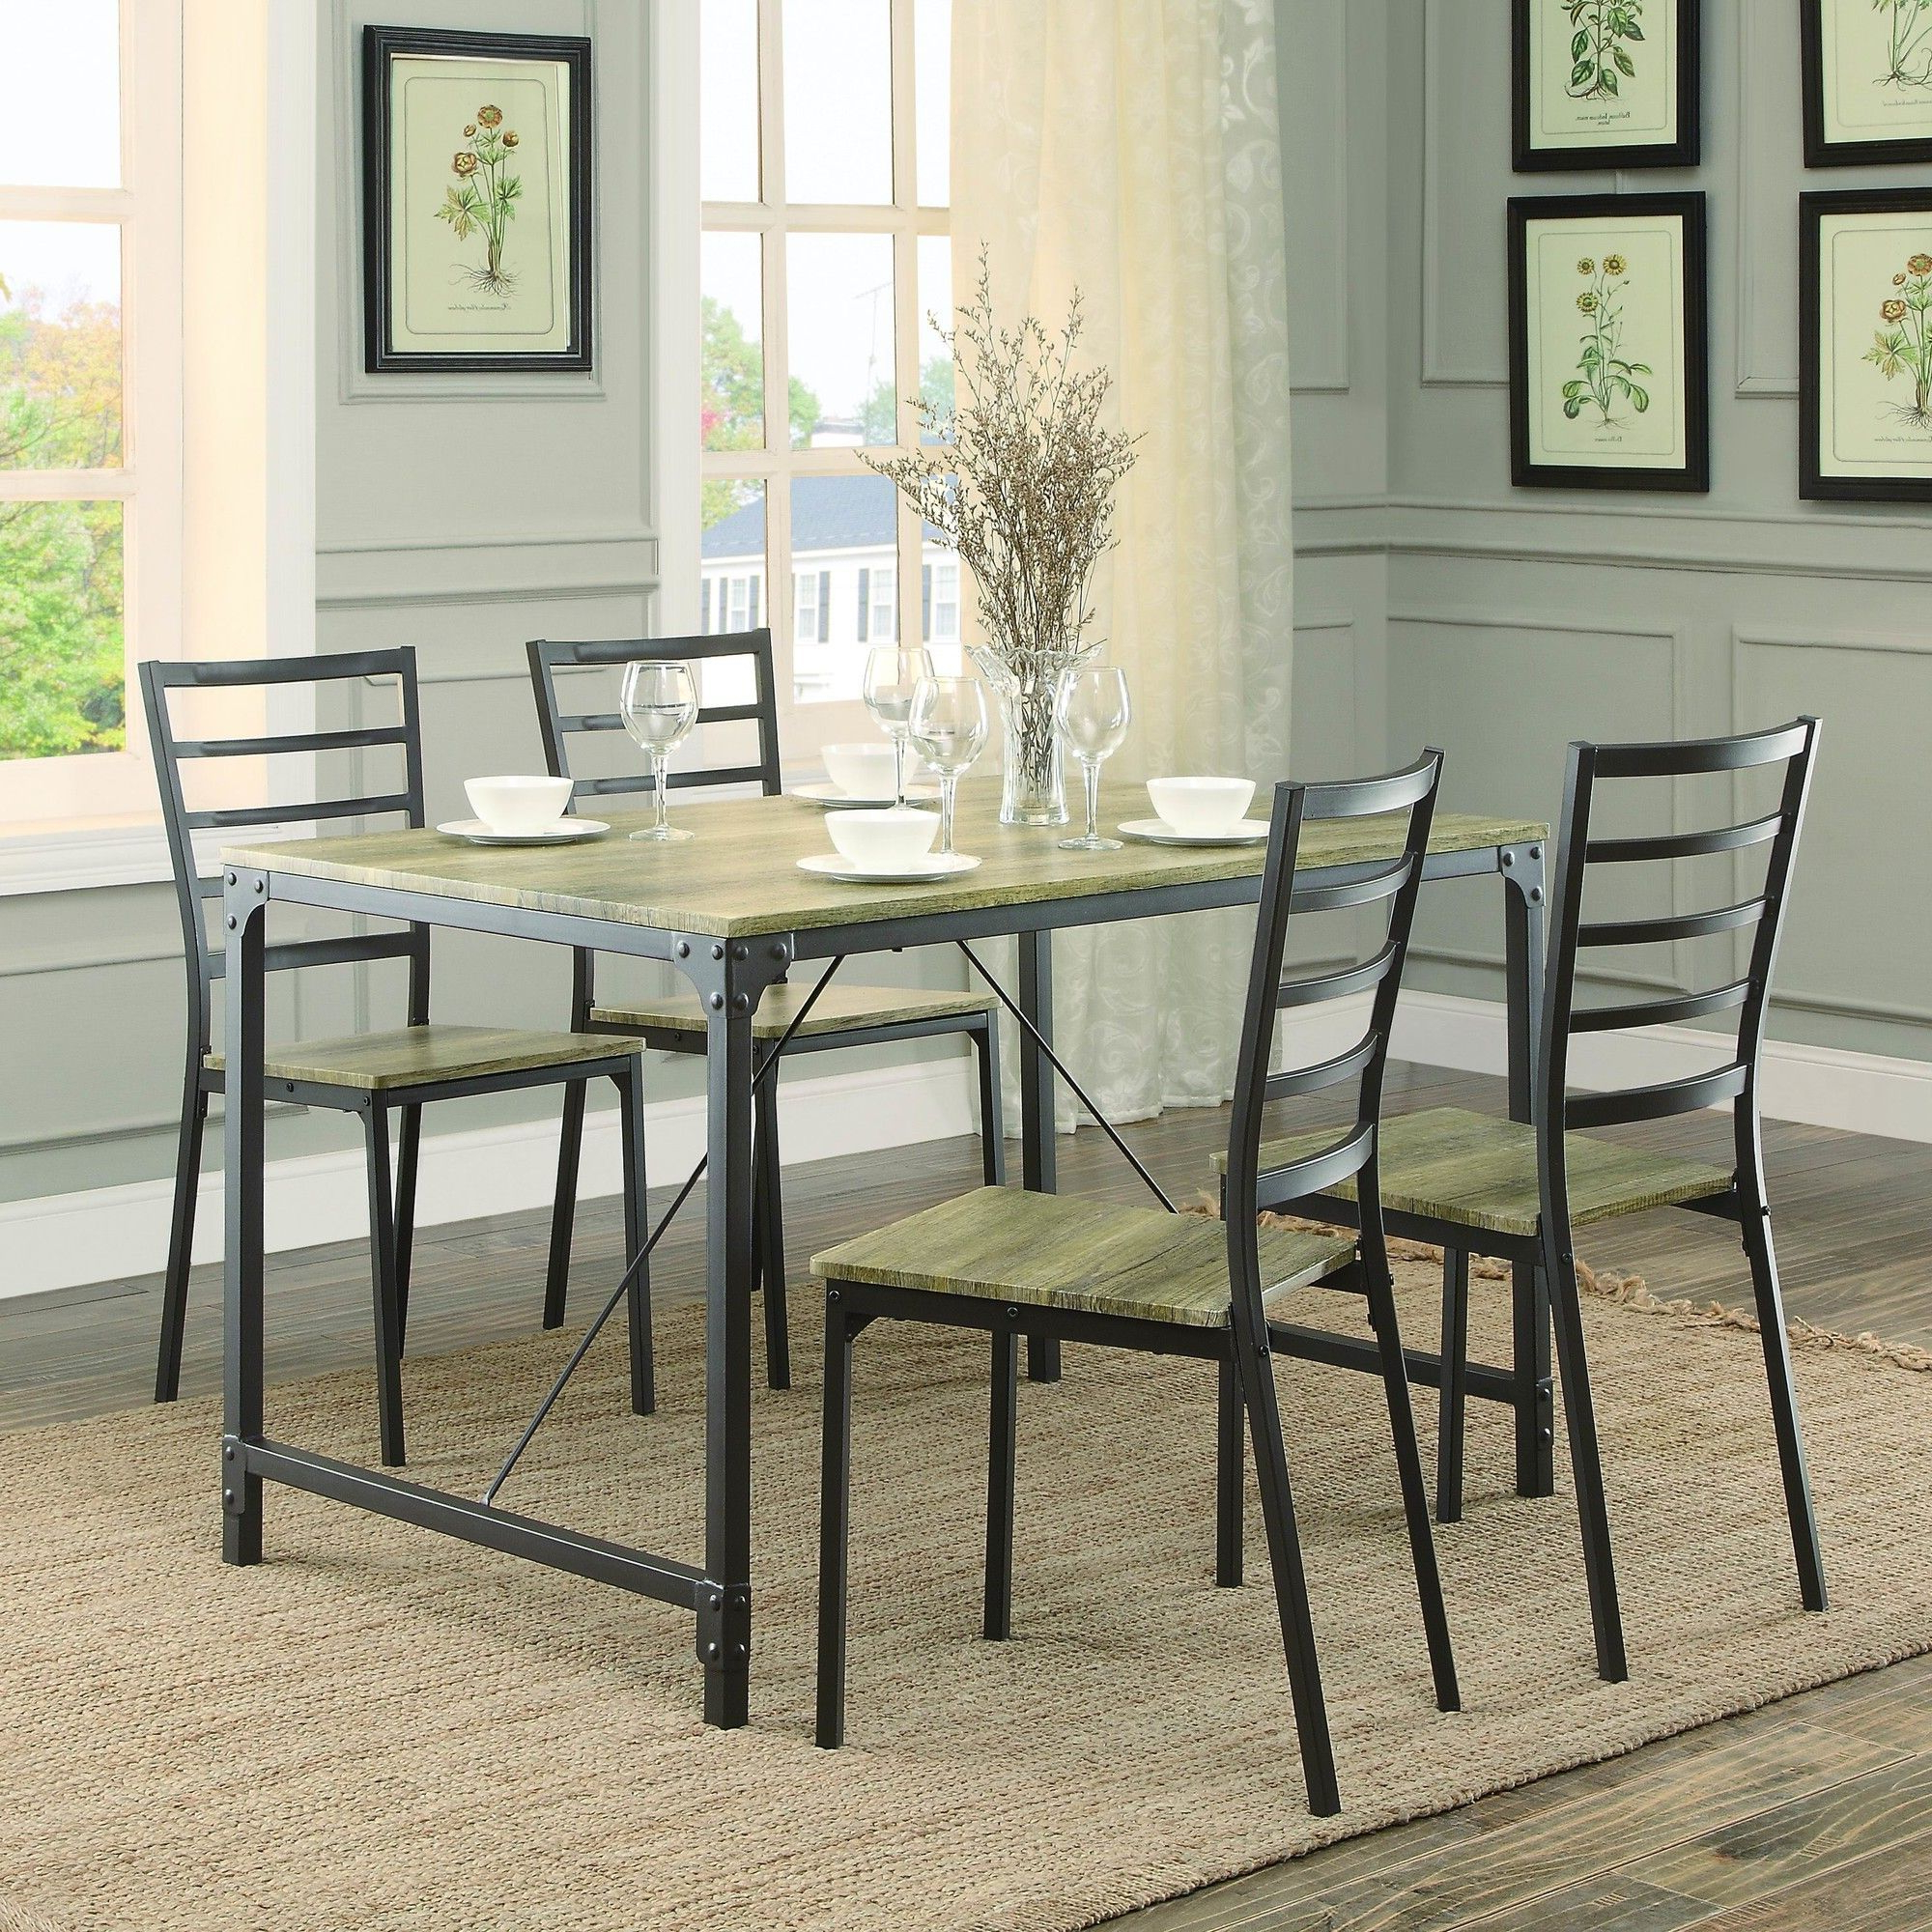 Dinette Sets, 5 regarding Most Recently Released Bismark Dining Tables